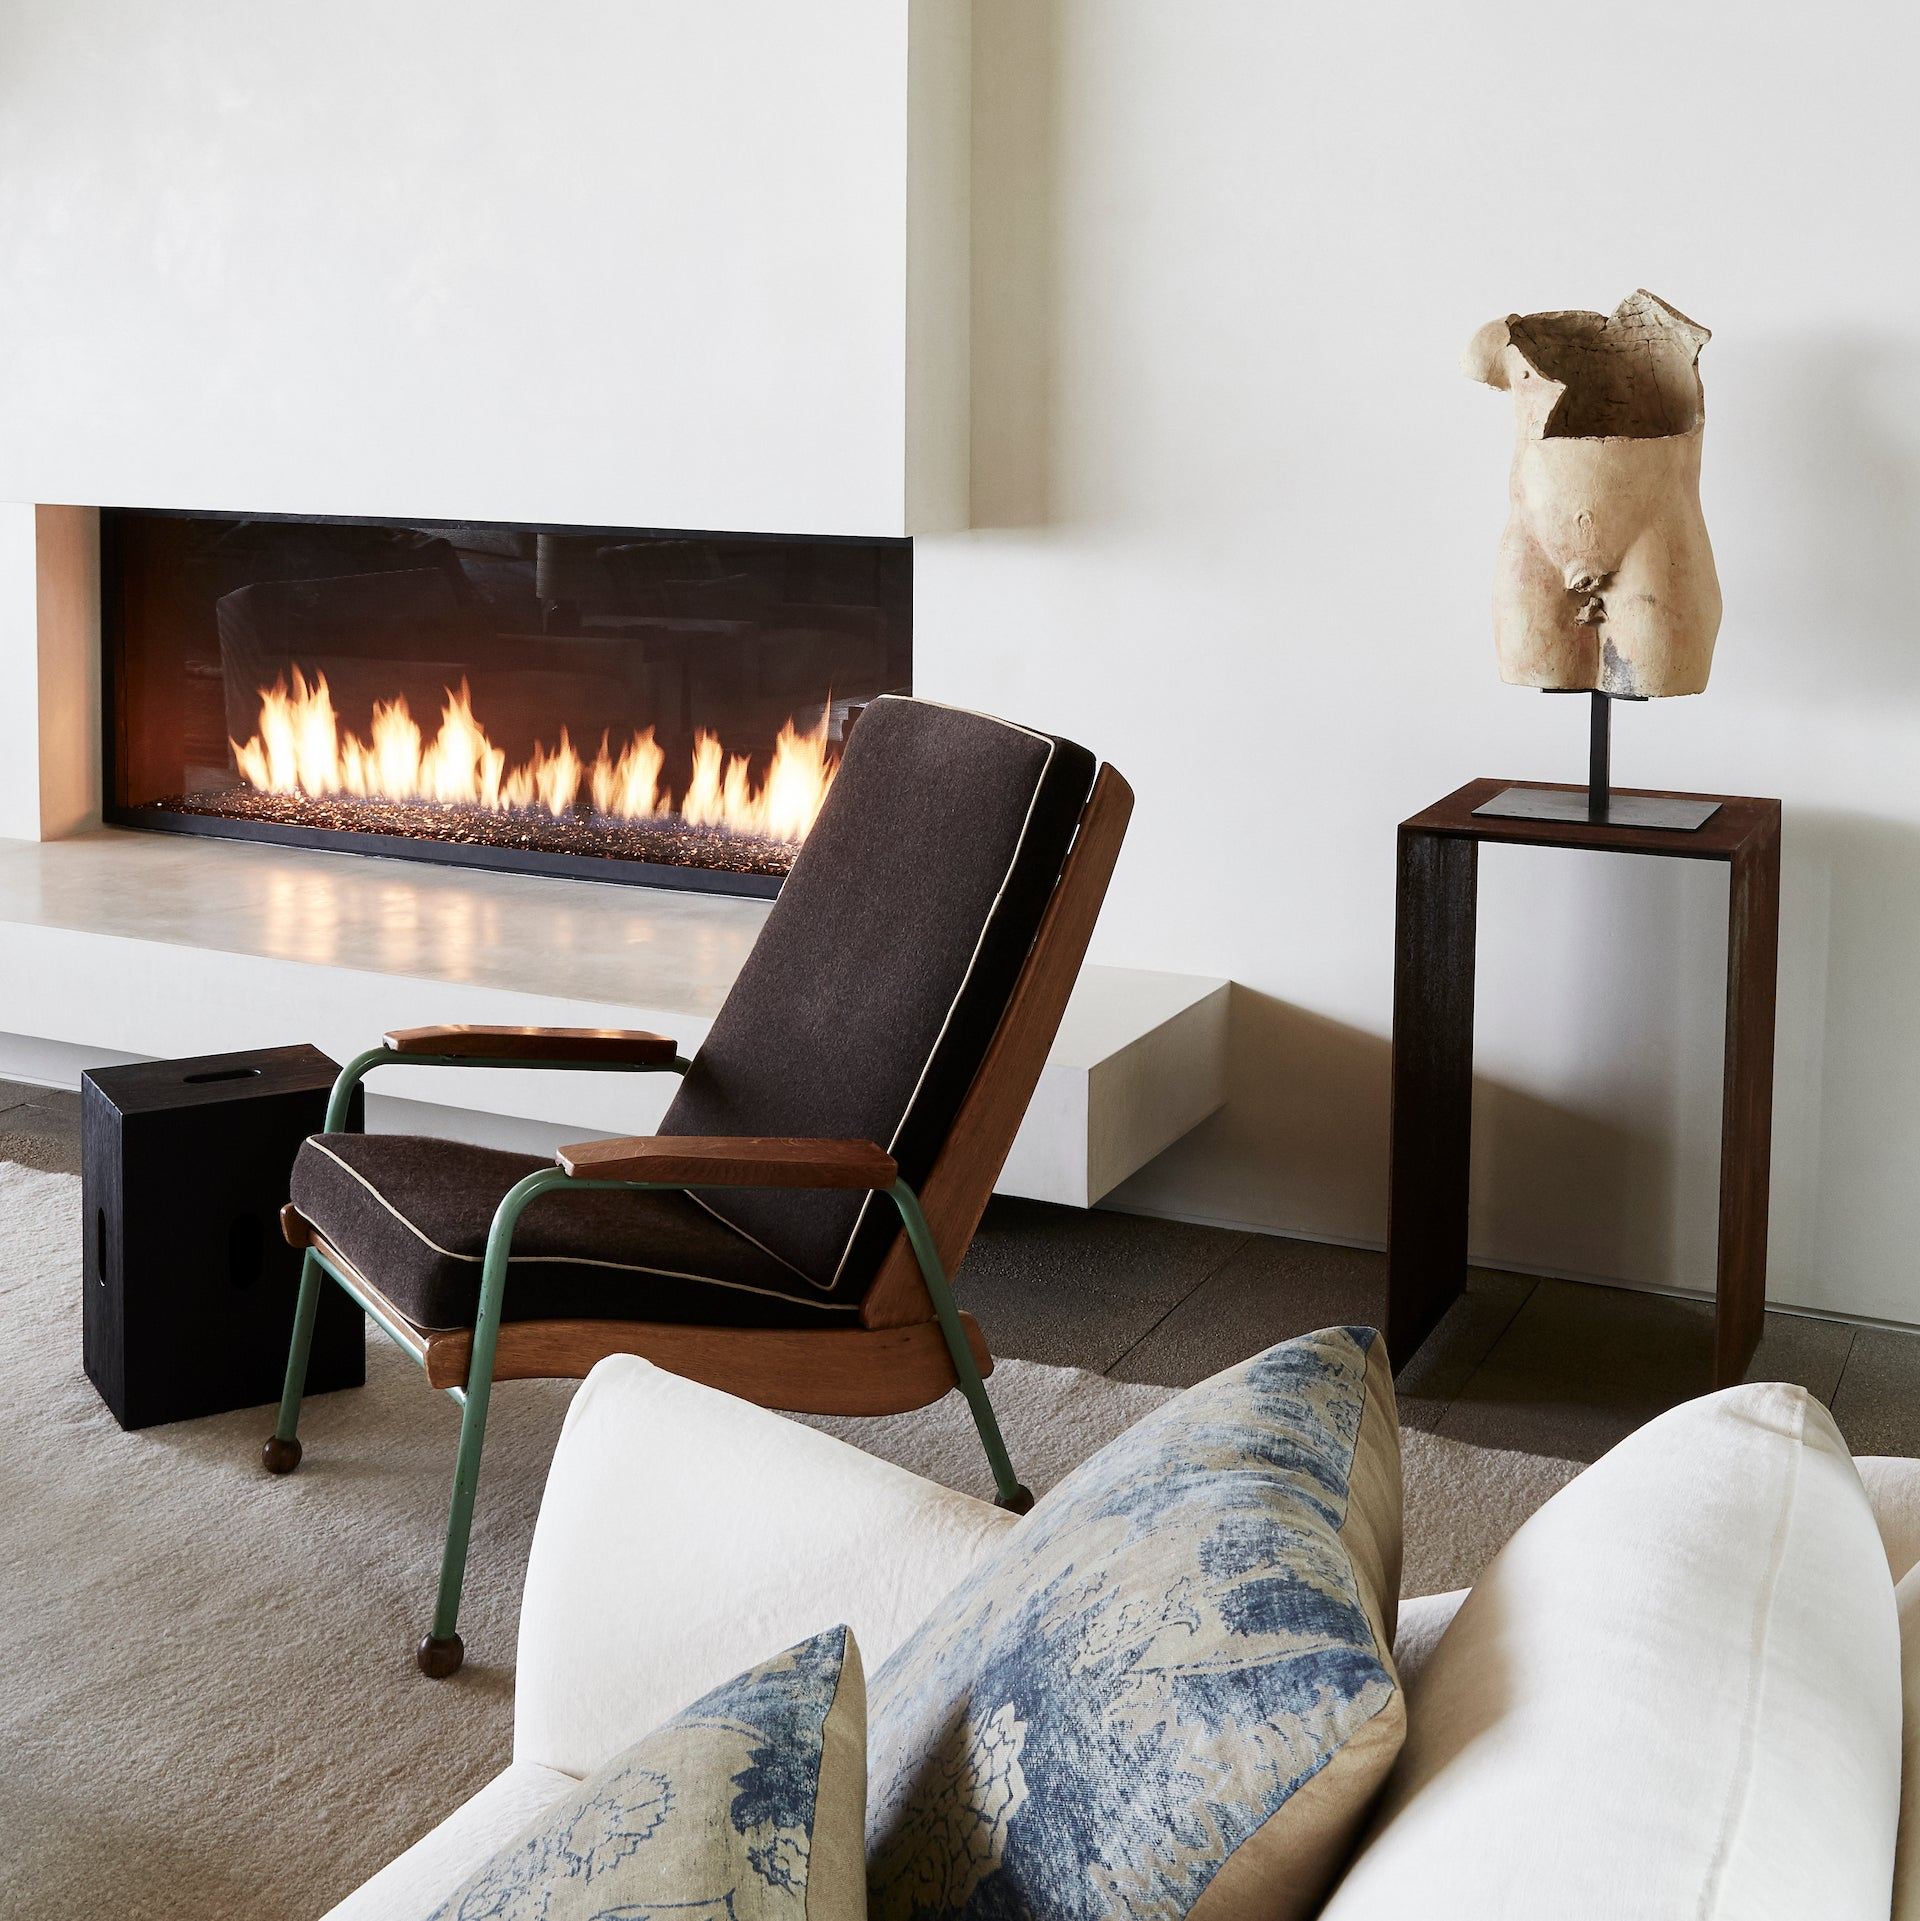 Padaro by Clements Design. Photo © William Abranowicz and Shade Degges; courtesy of Rizzoli